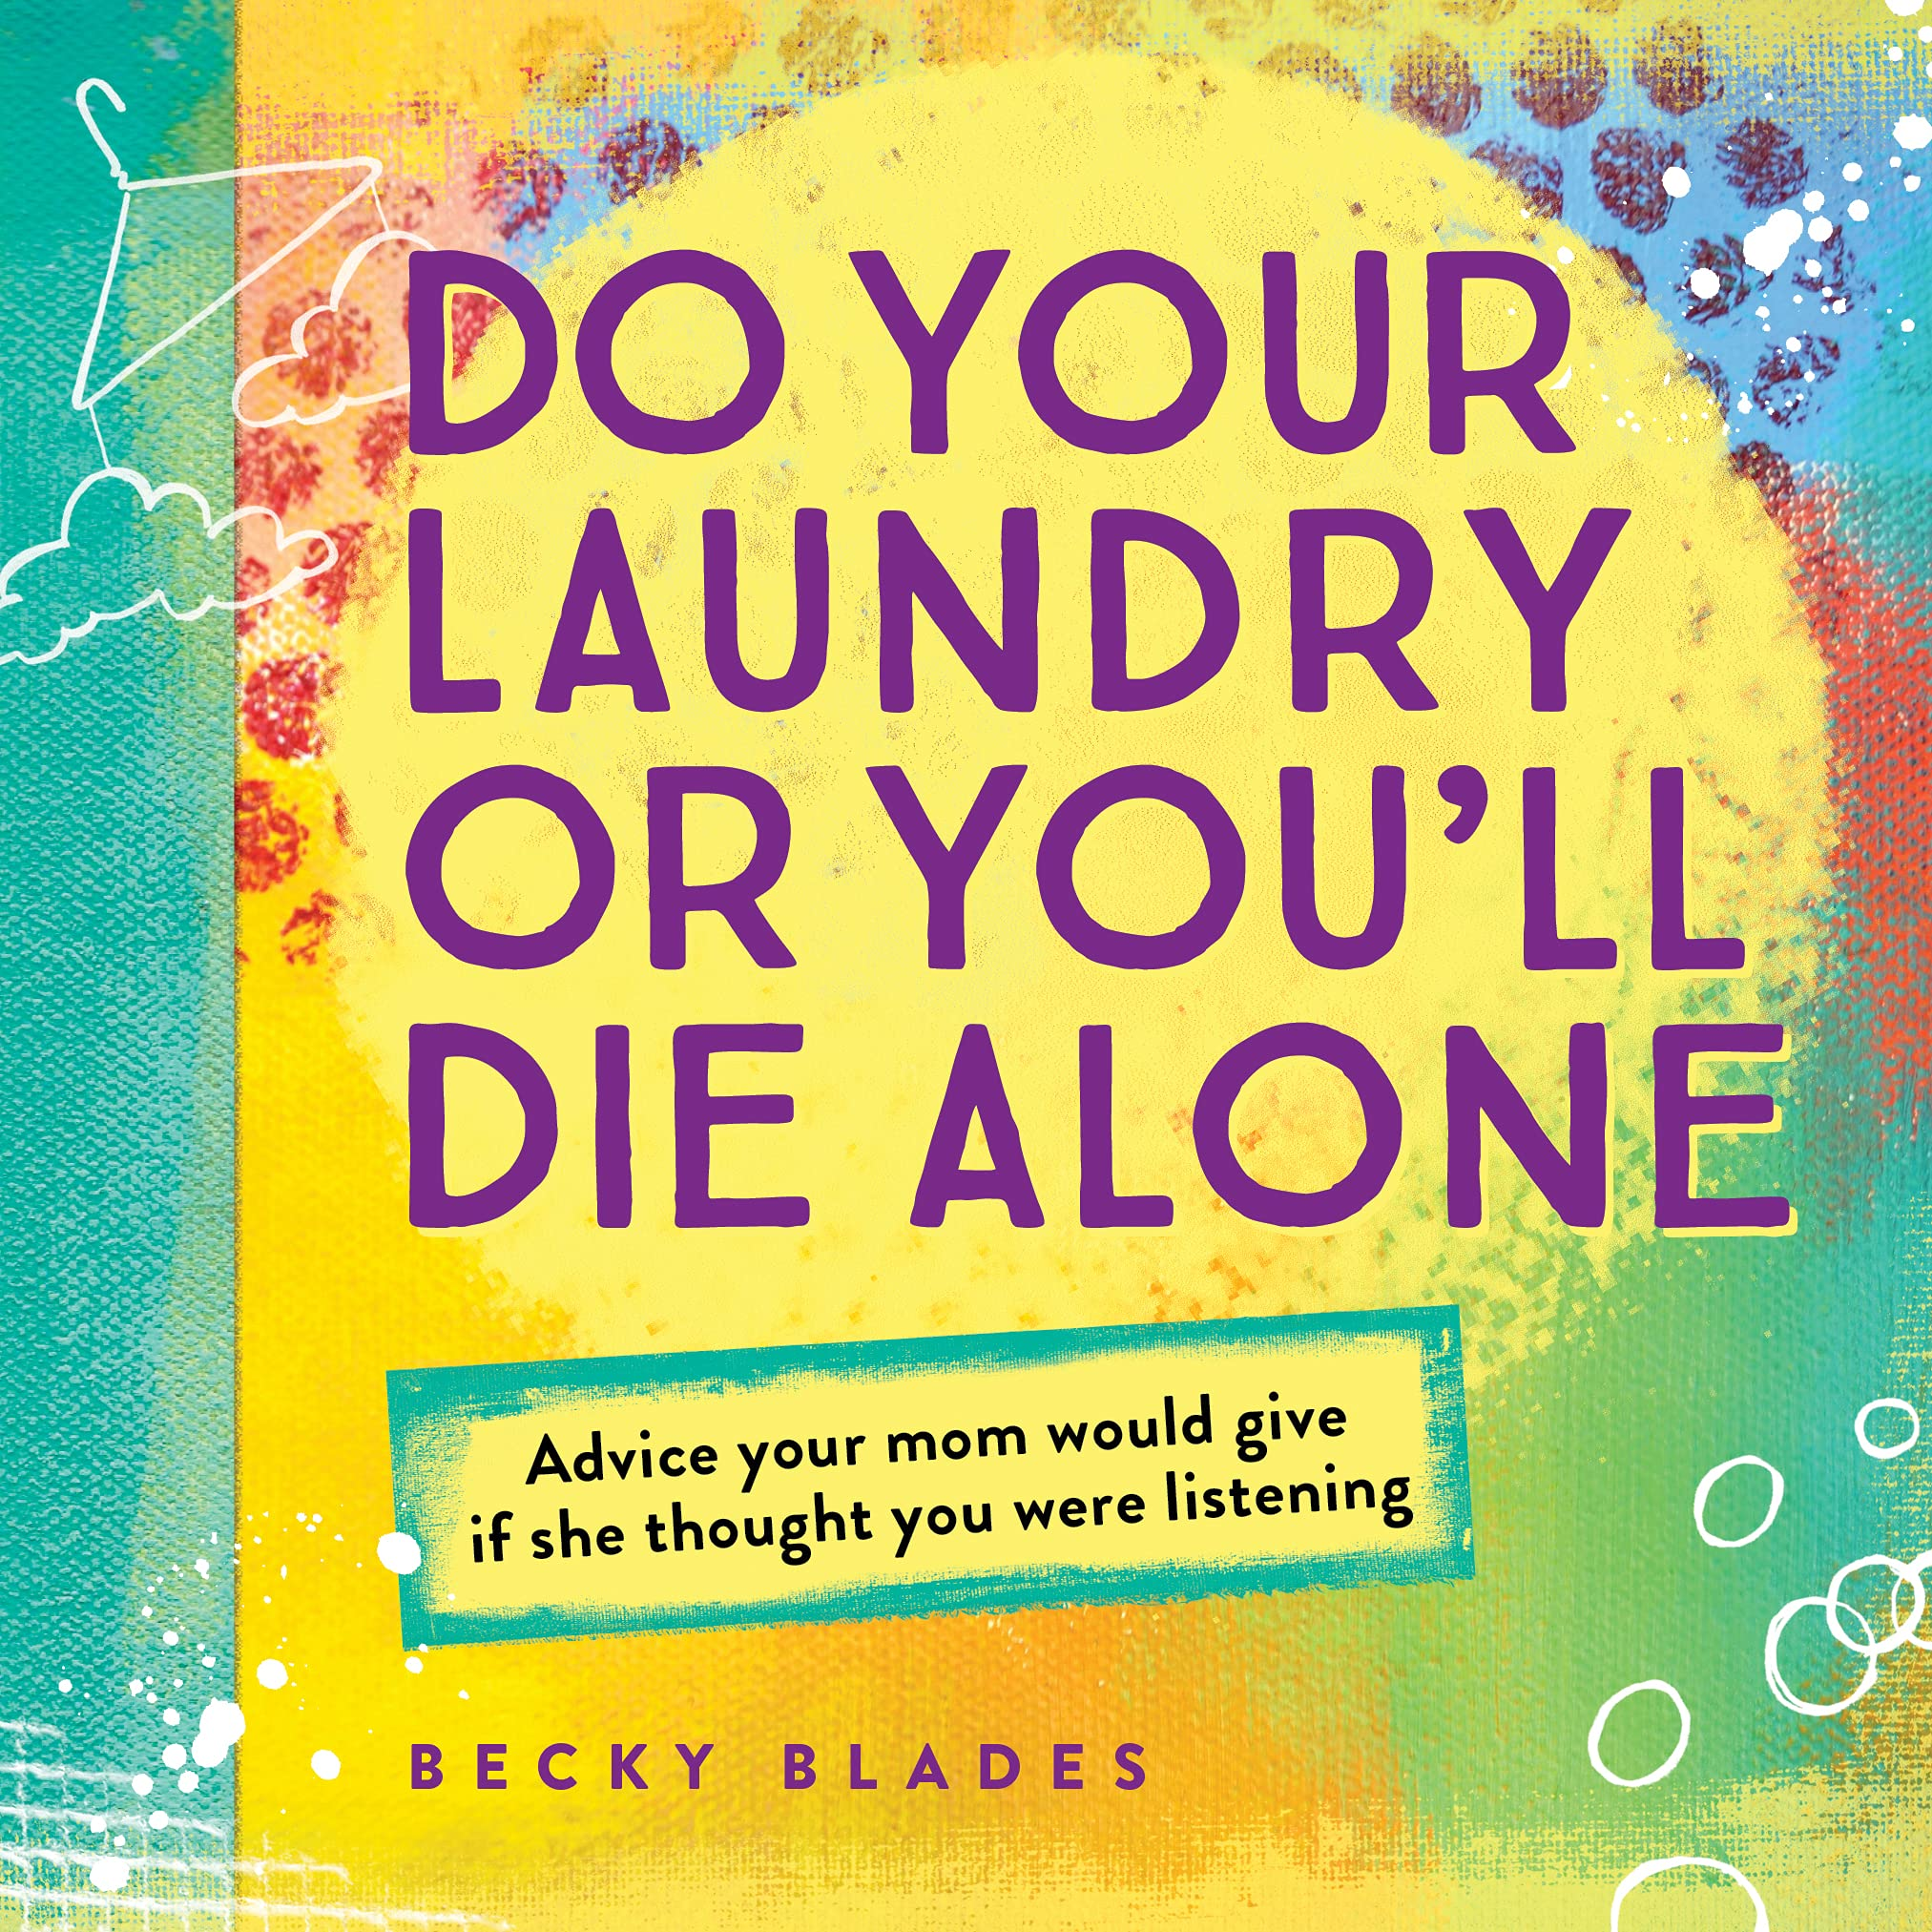 Do Your Laundry Of You Will Die Alone Book - Unique Gift Ideas For 17 Year Old Female Teenage Girl